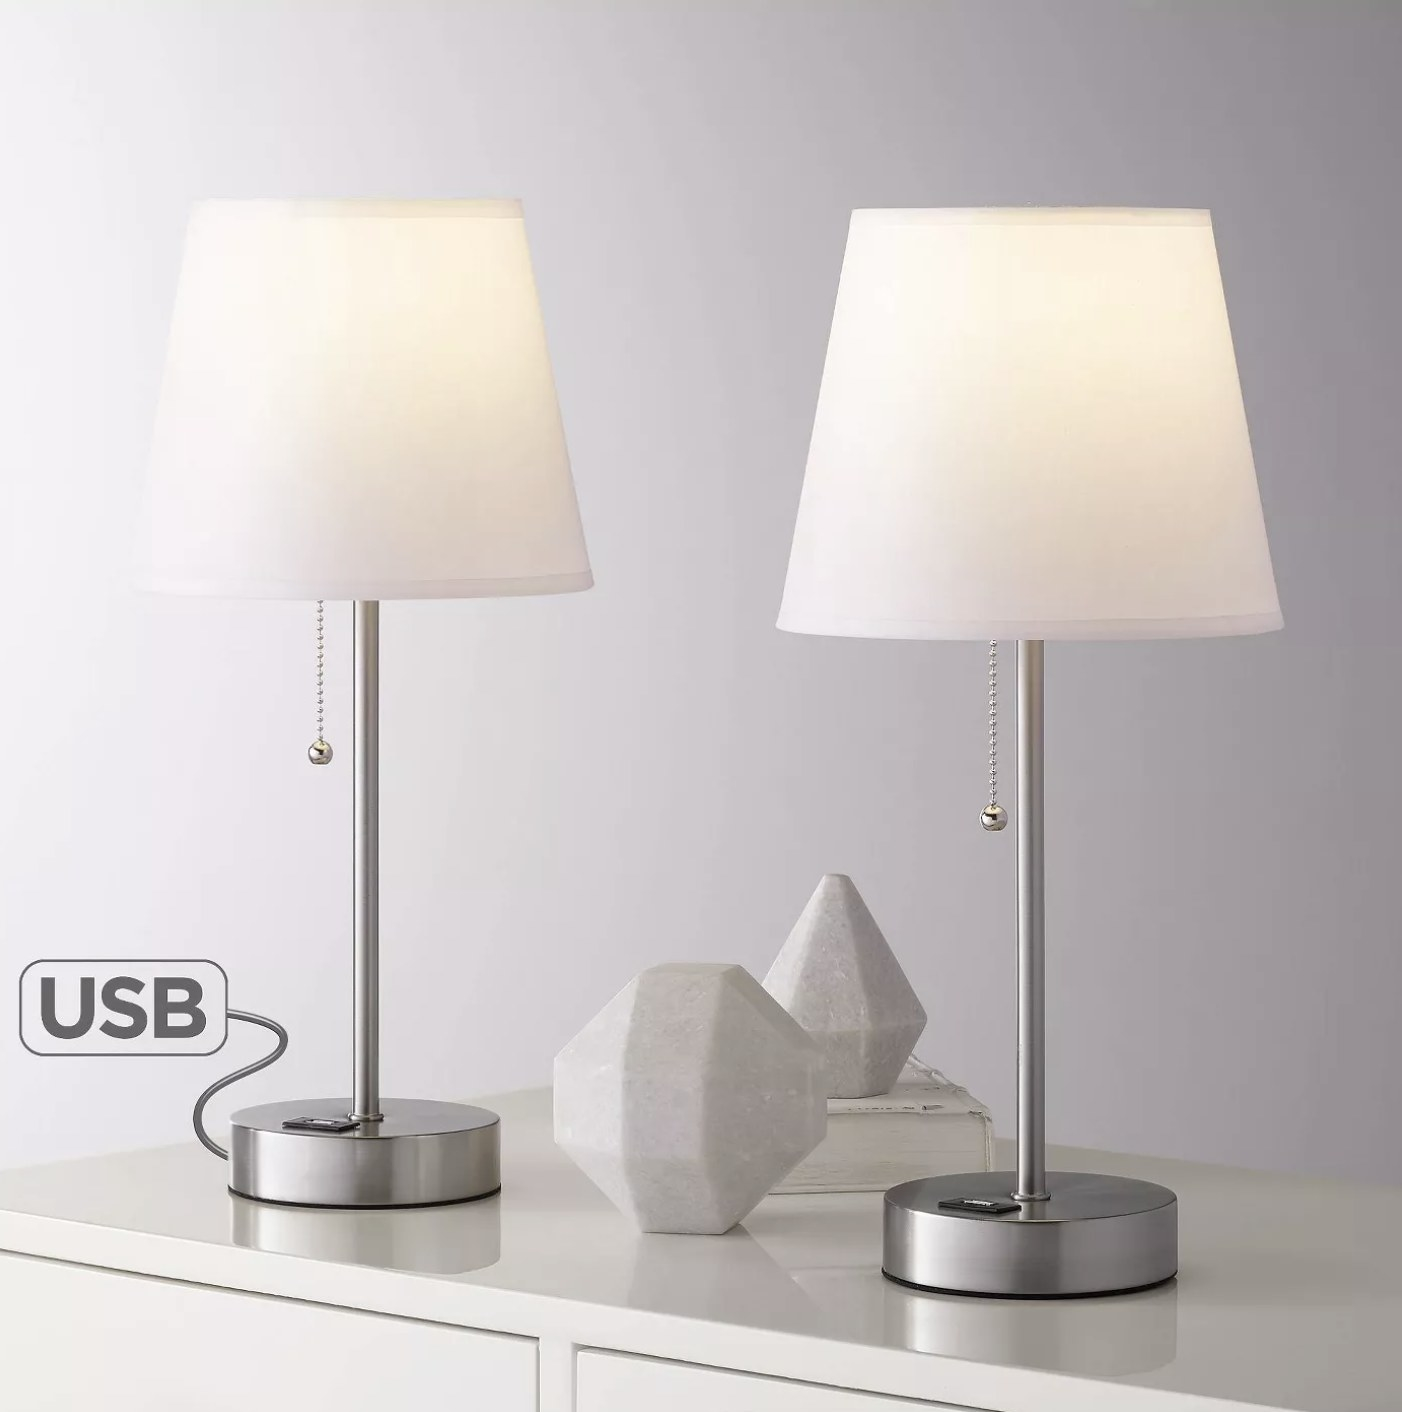 The two table lamps